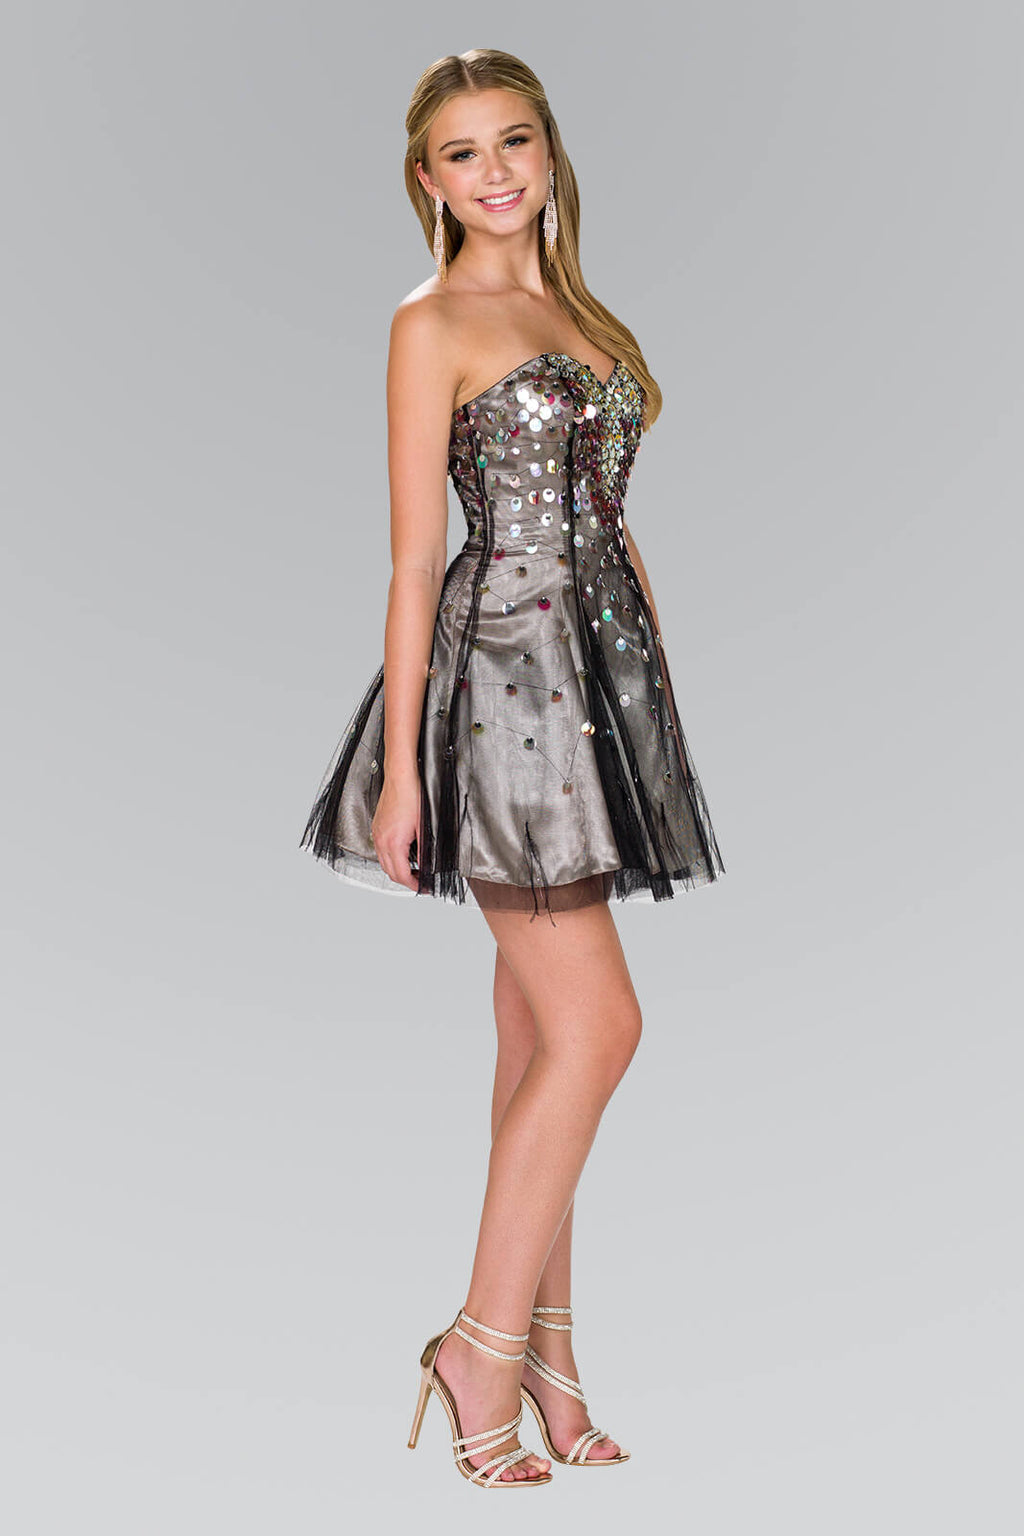 Strapless Short Prom Dress Formal Homecoming - The Dress Outlet Nude